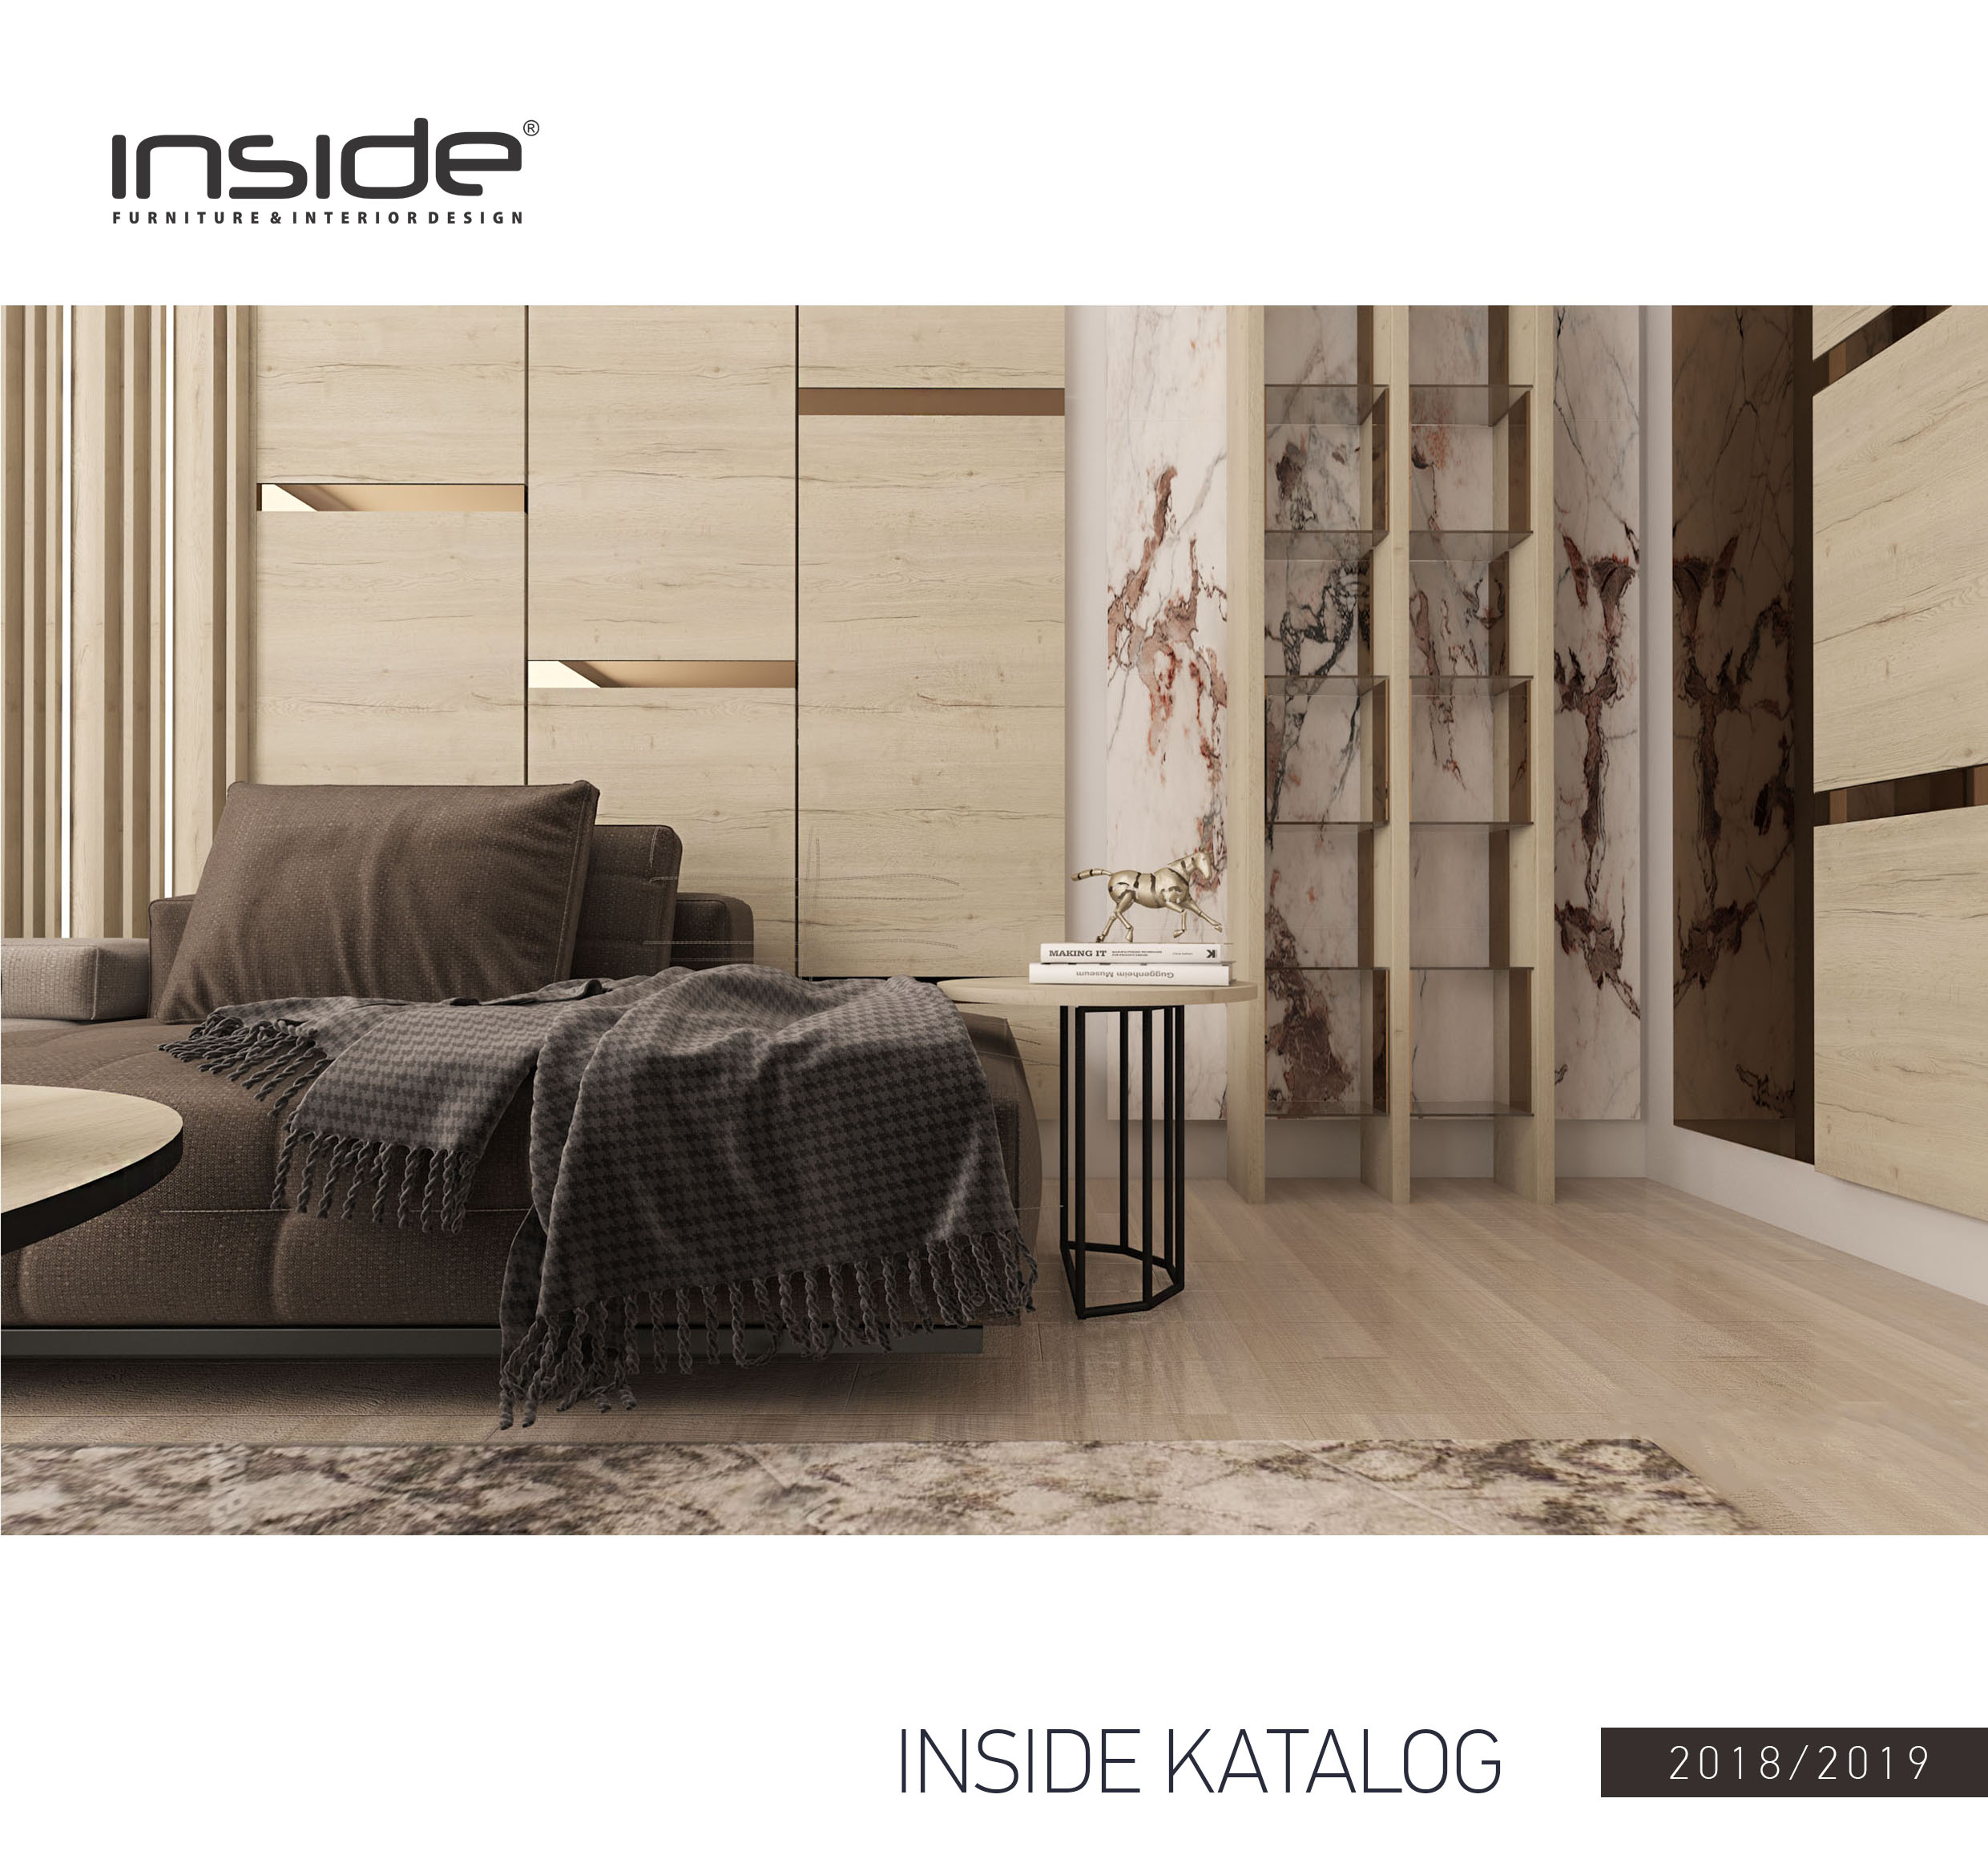 Katalog - Inside catalogue